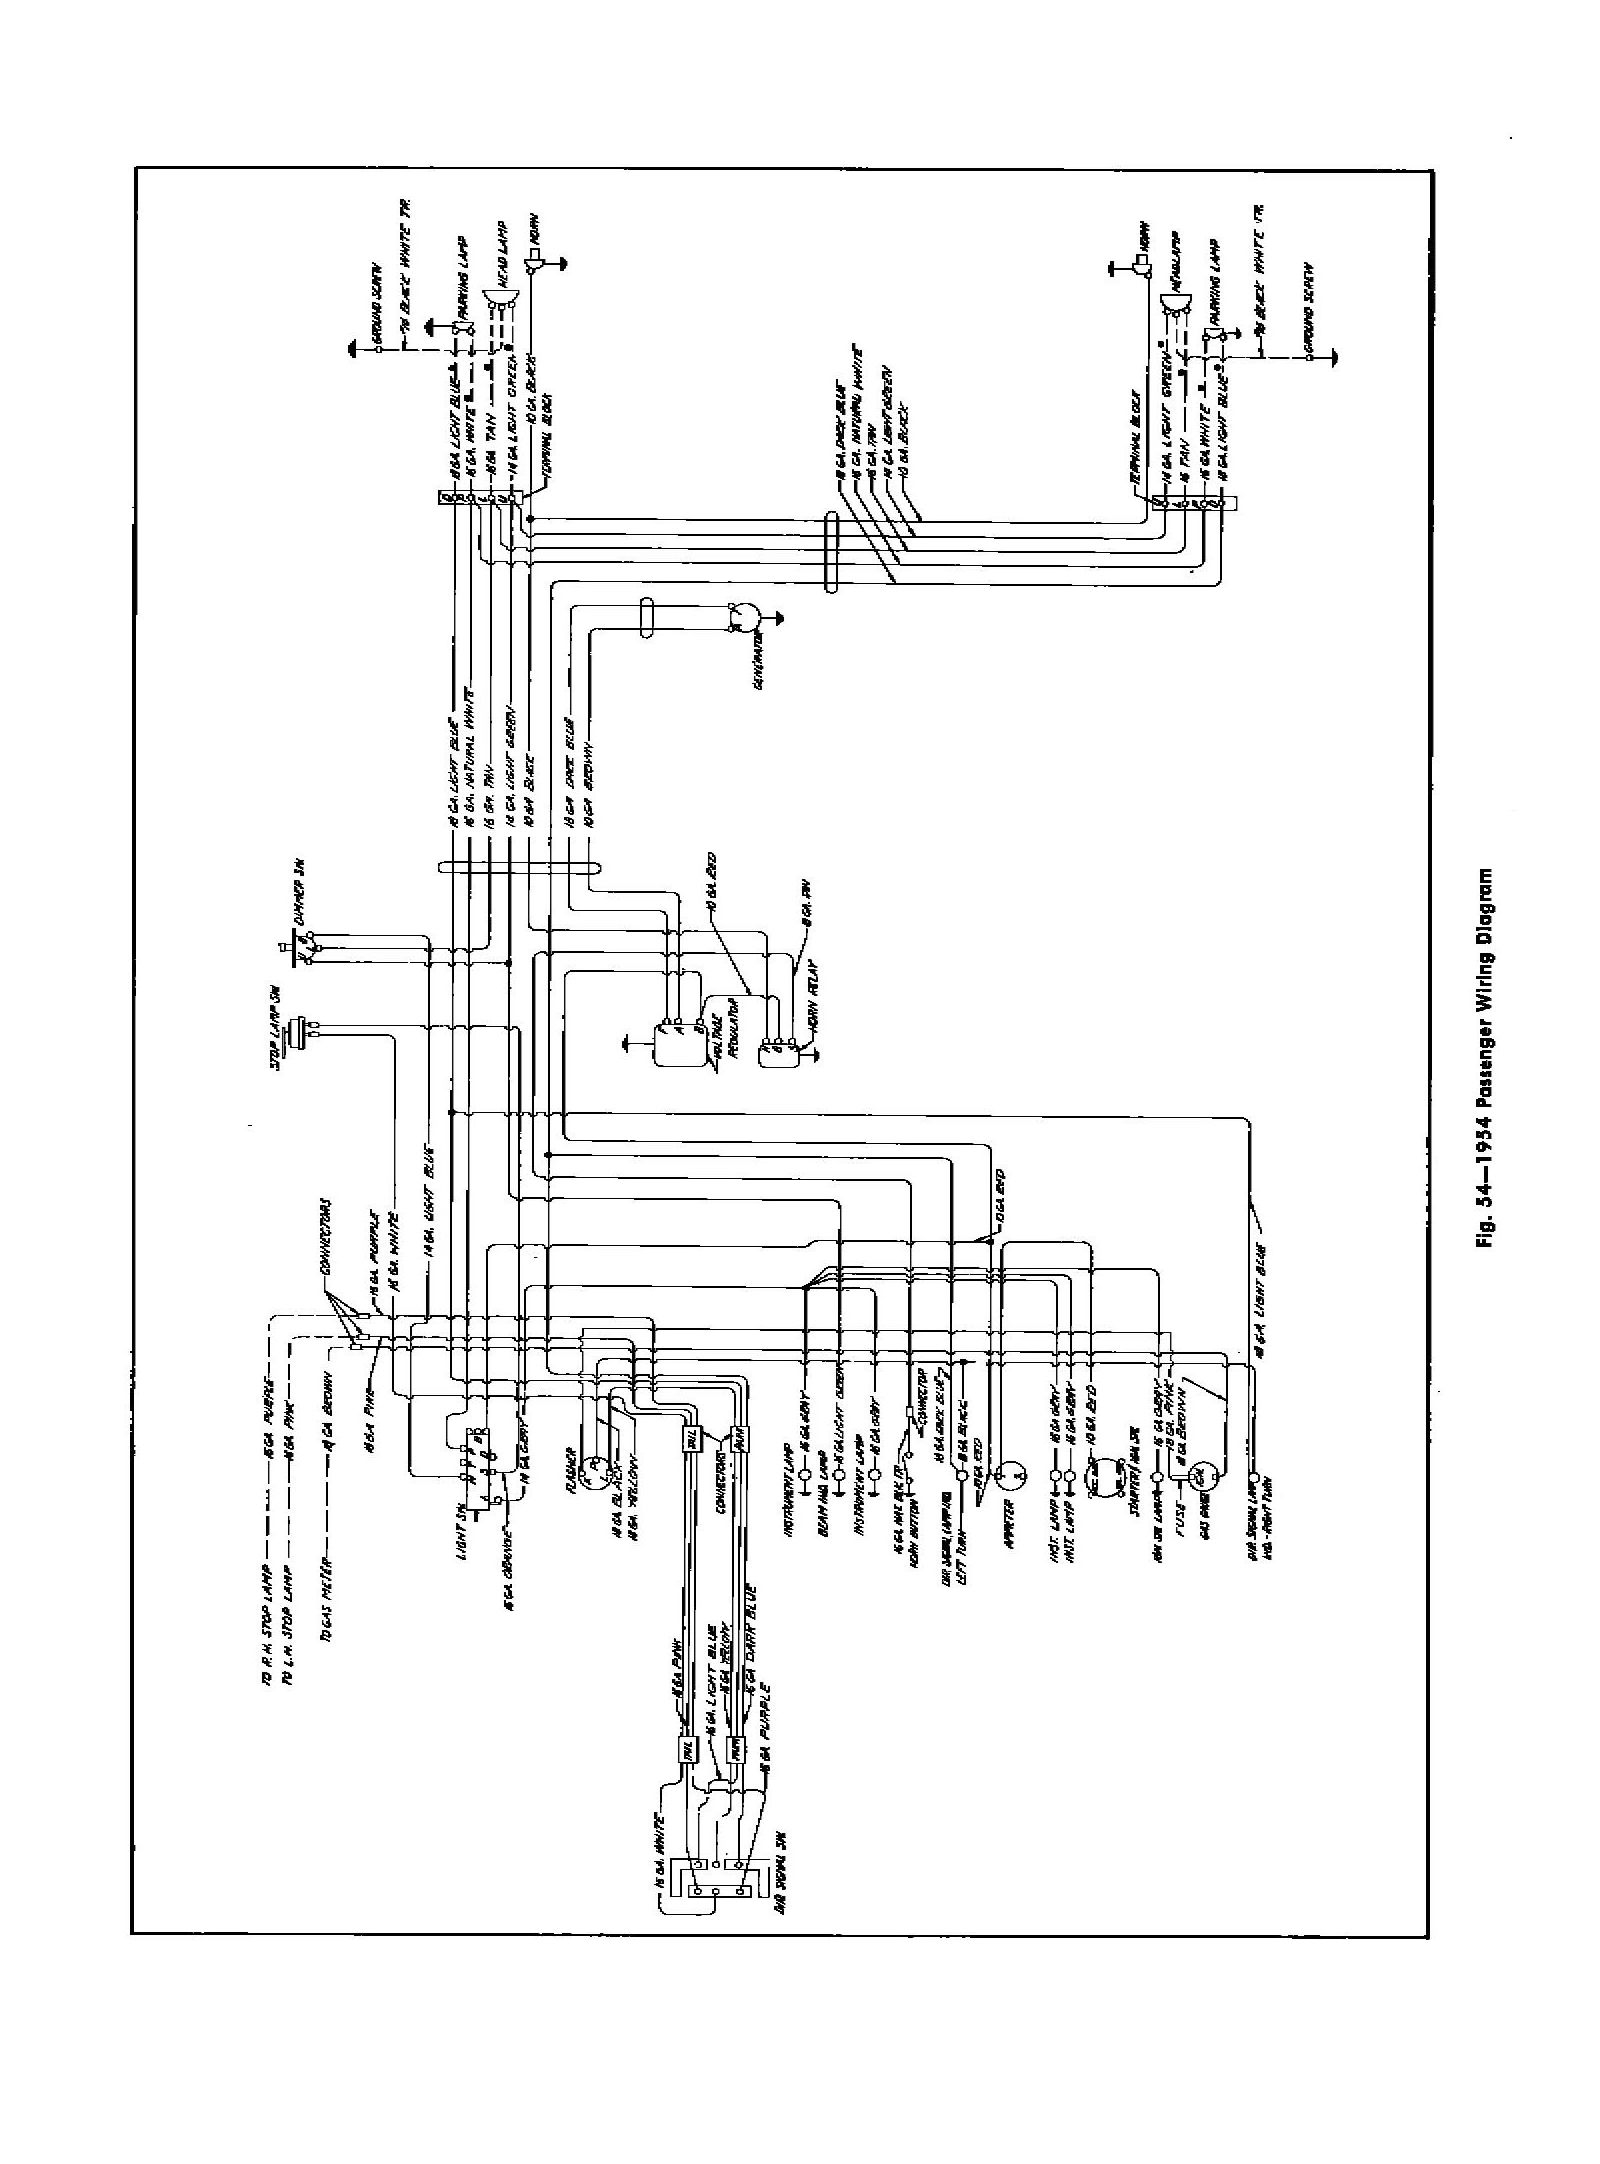 hight resolution of chevy wiring diagrams 1997 corvette wiring diagram 1954 corvette wiring diagram